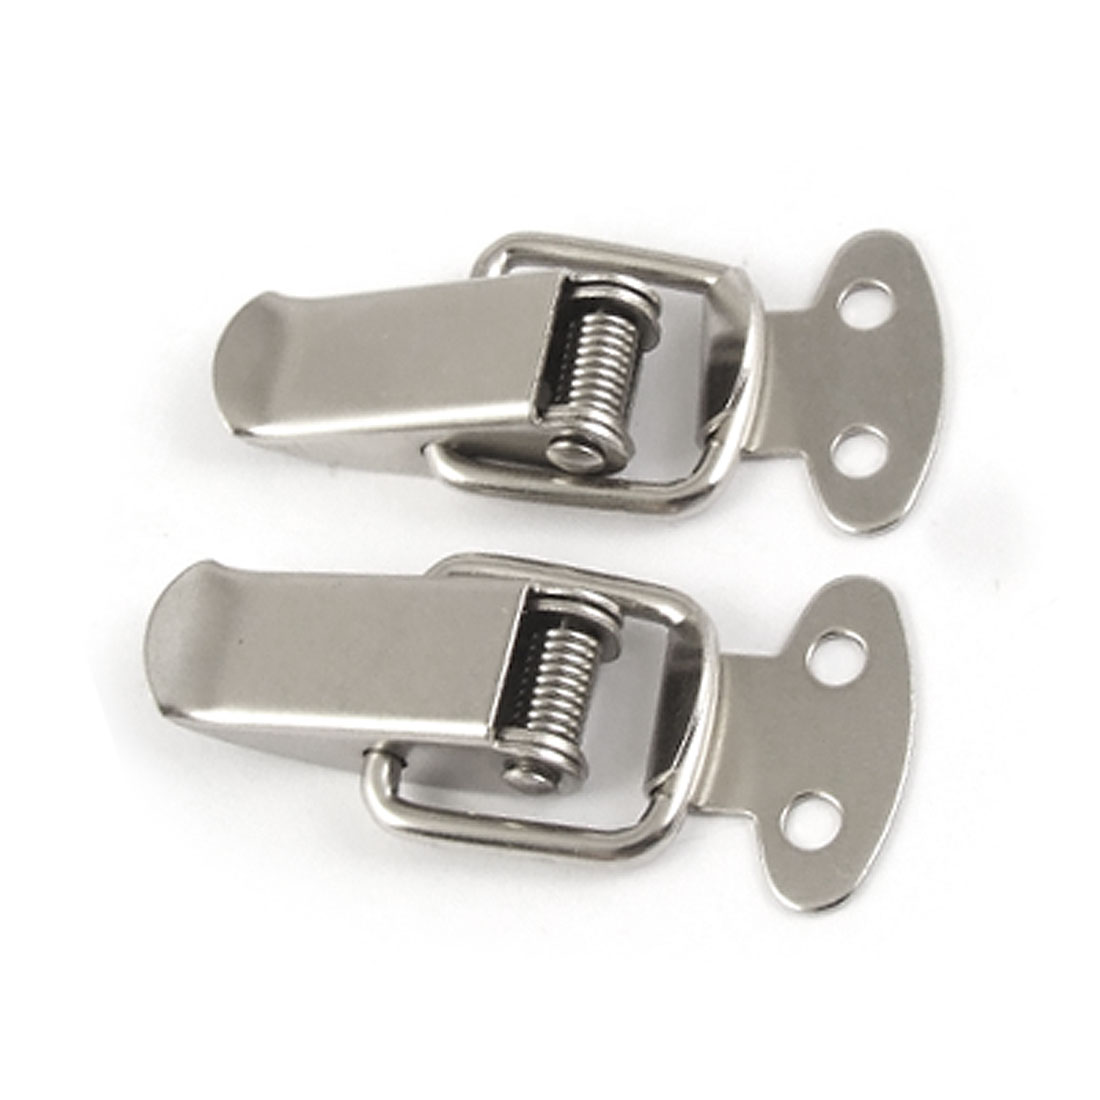 Silver Tone Stainless Flap Design Hasp Connector